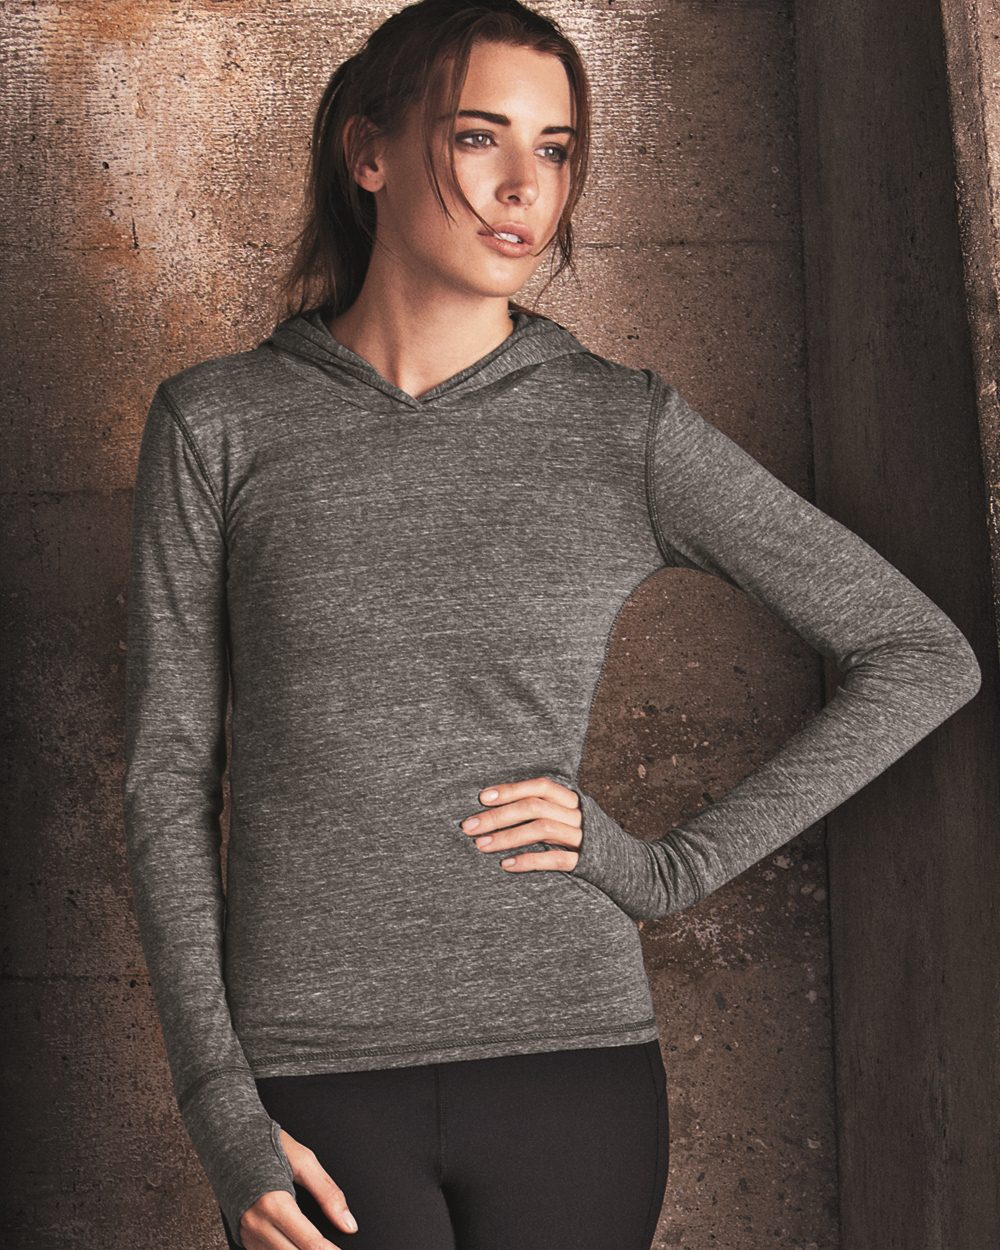 f68dff64bcfe4 alo - Ladies' Triblend Long Sleeve Hooded Pullover $15.23 - Women's Sport  Shirts